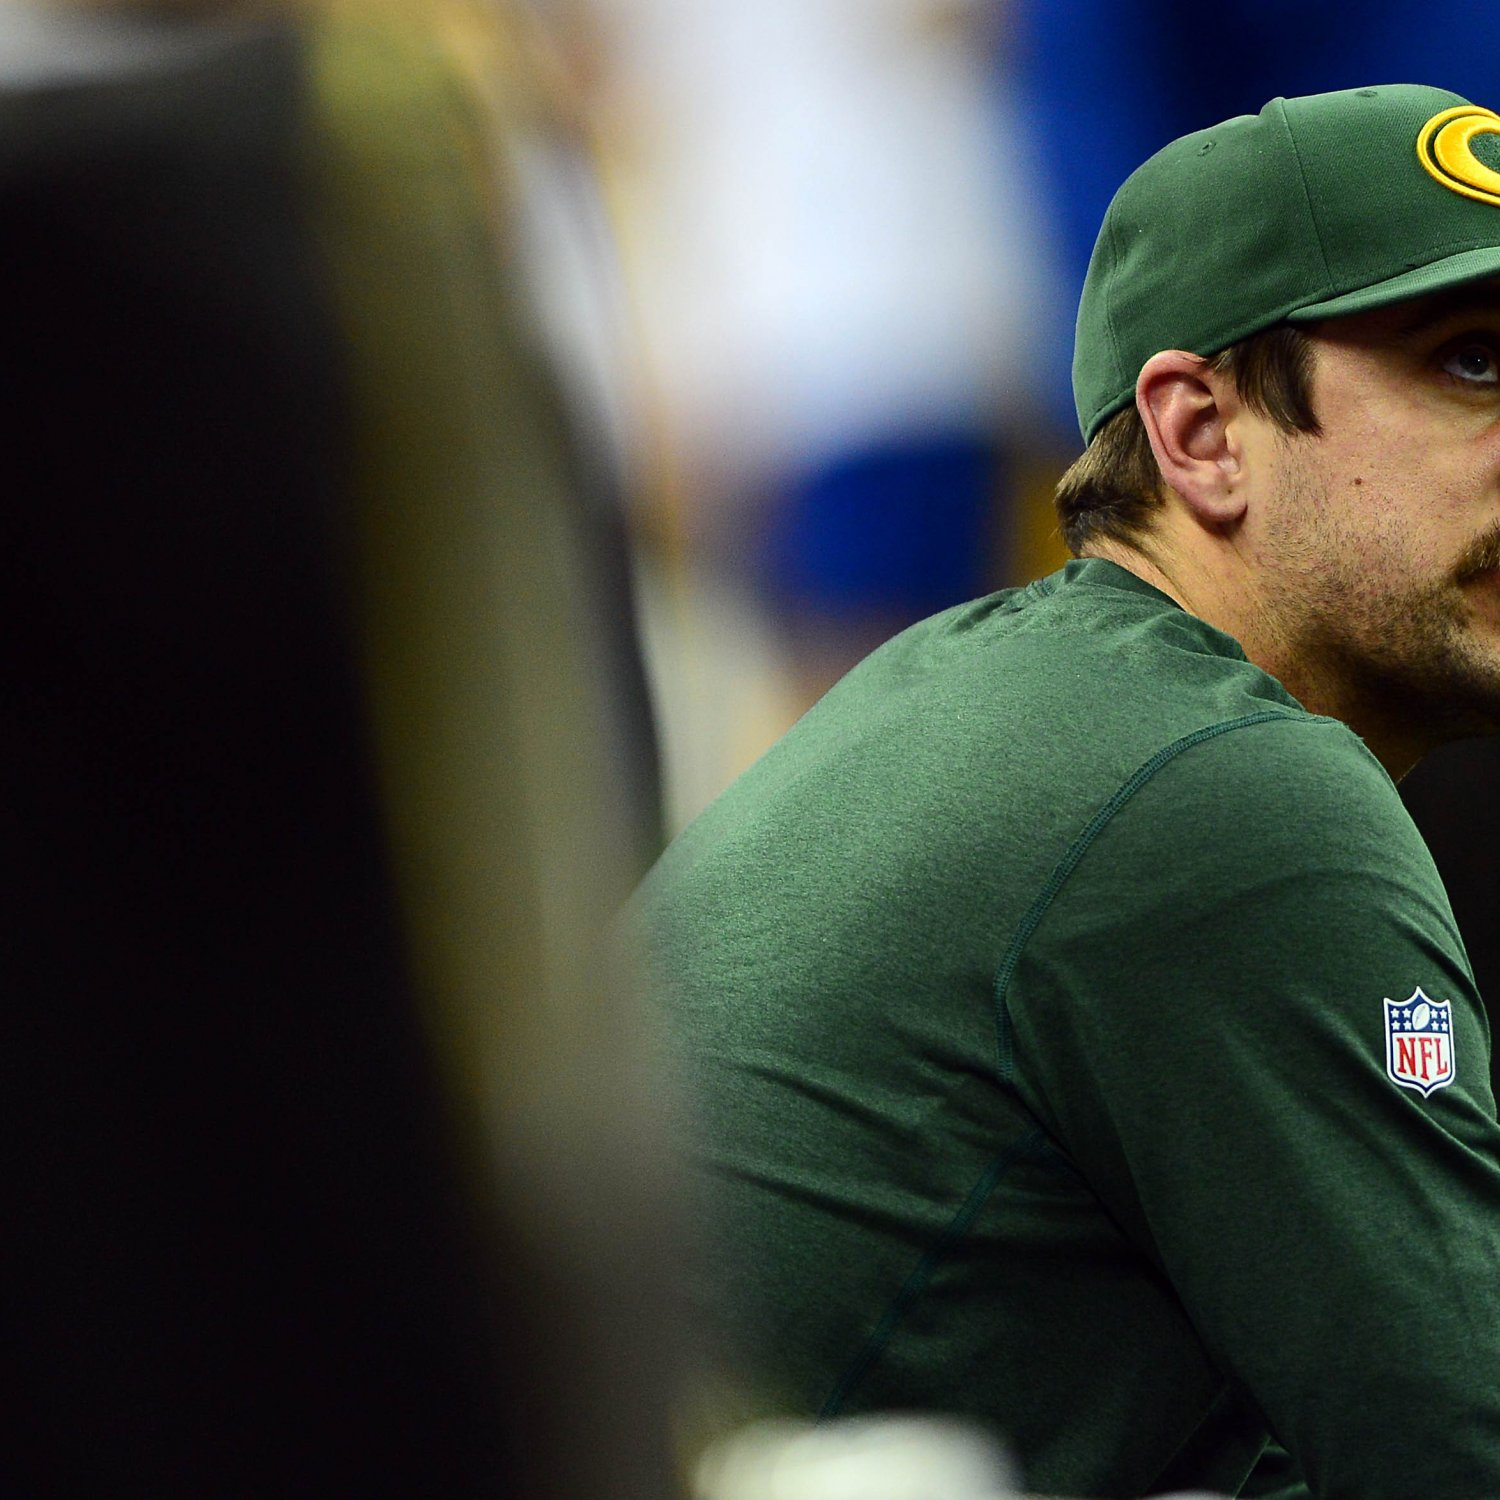 Aaron Rodgers Injury: Packers Smart to Keep Star QB out vs. Dallas Cowboys